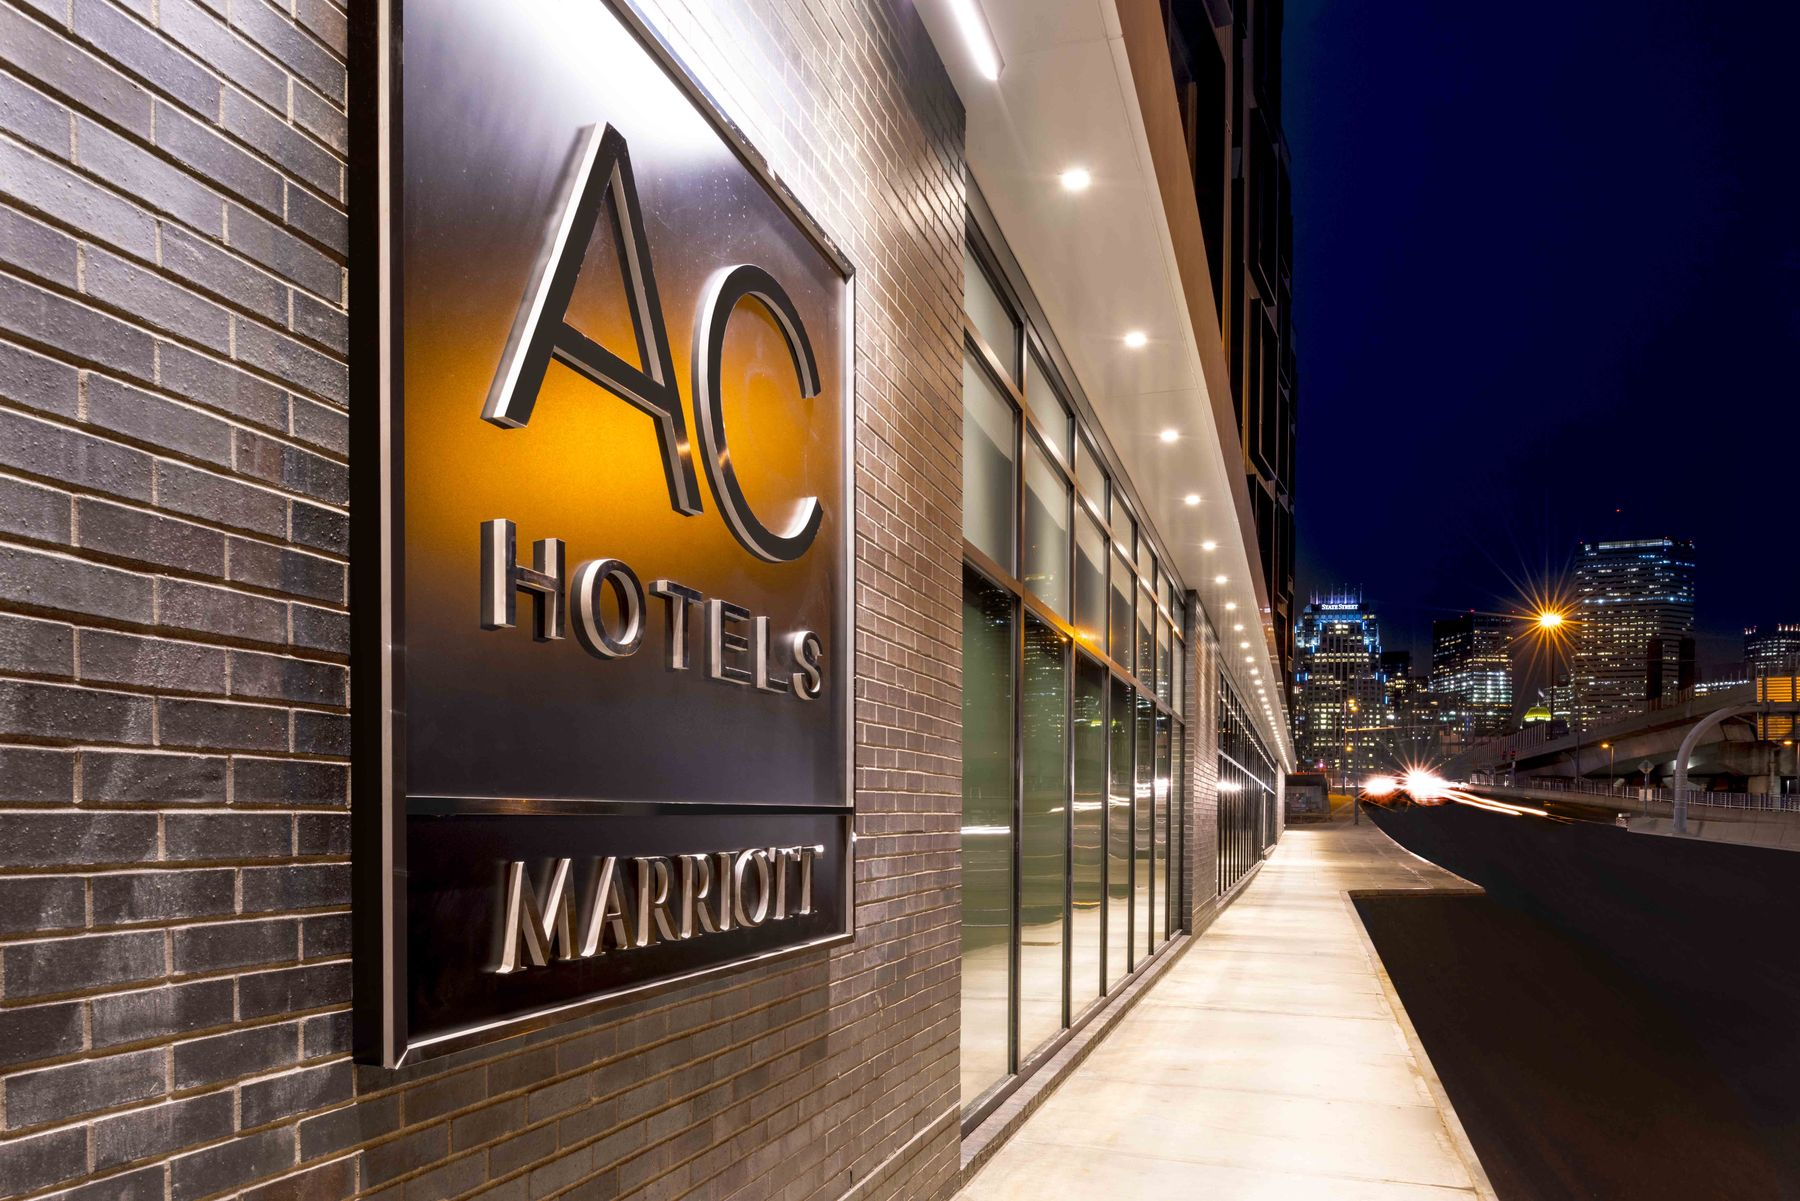 Exterior AC Hotels by Marriott sign